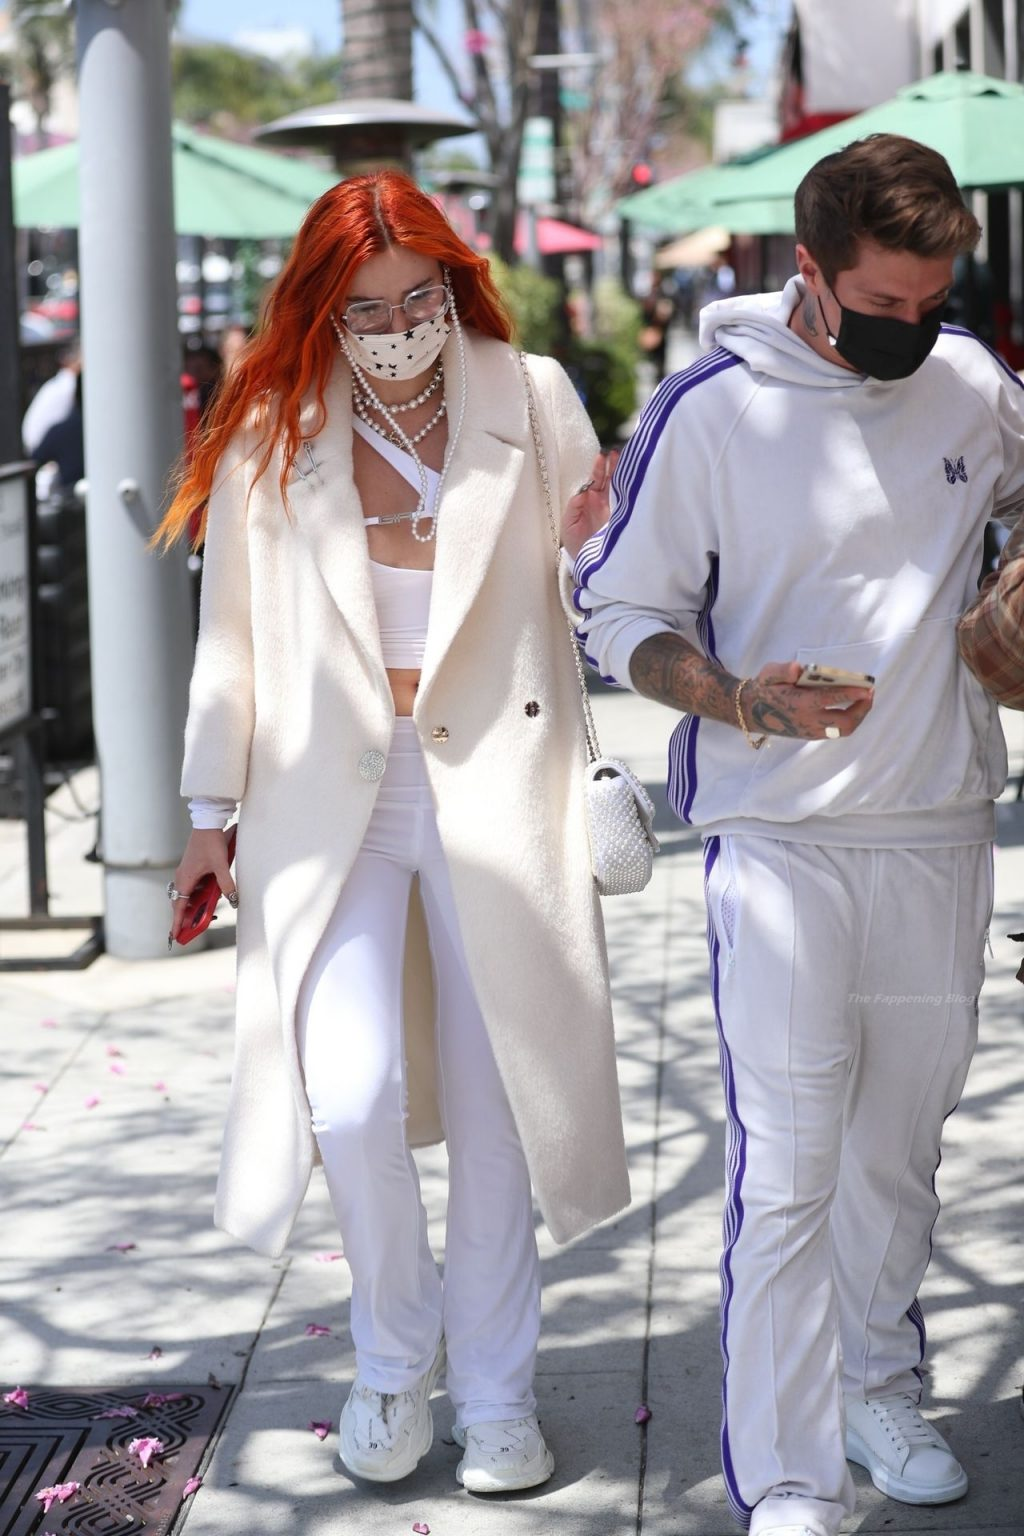 Bella Thorne & Benjamin Mascolo Match in All White For a Date at Il Pastaio (36 Photos)